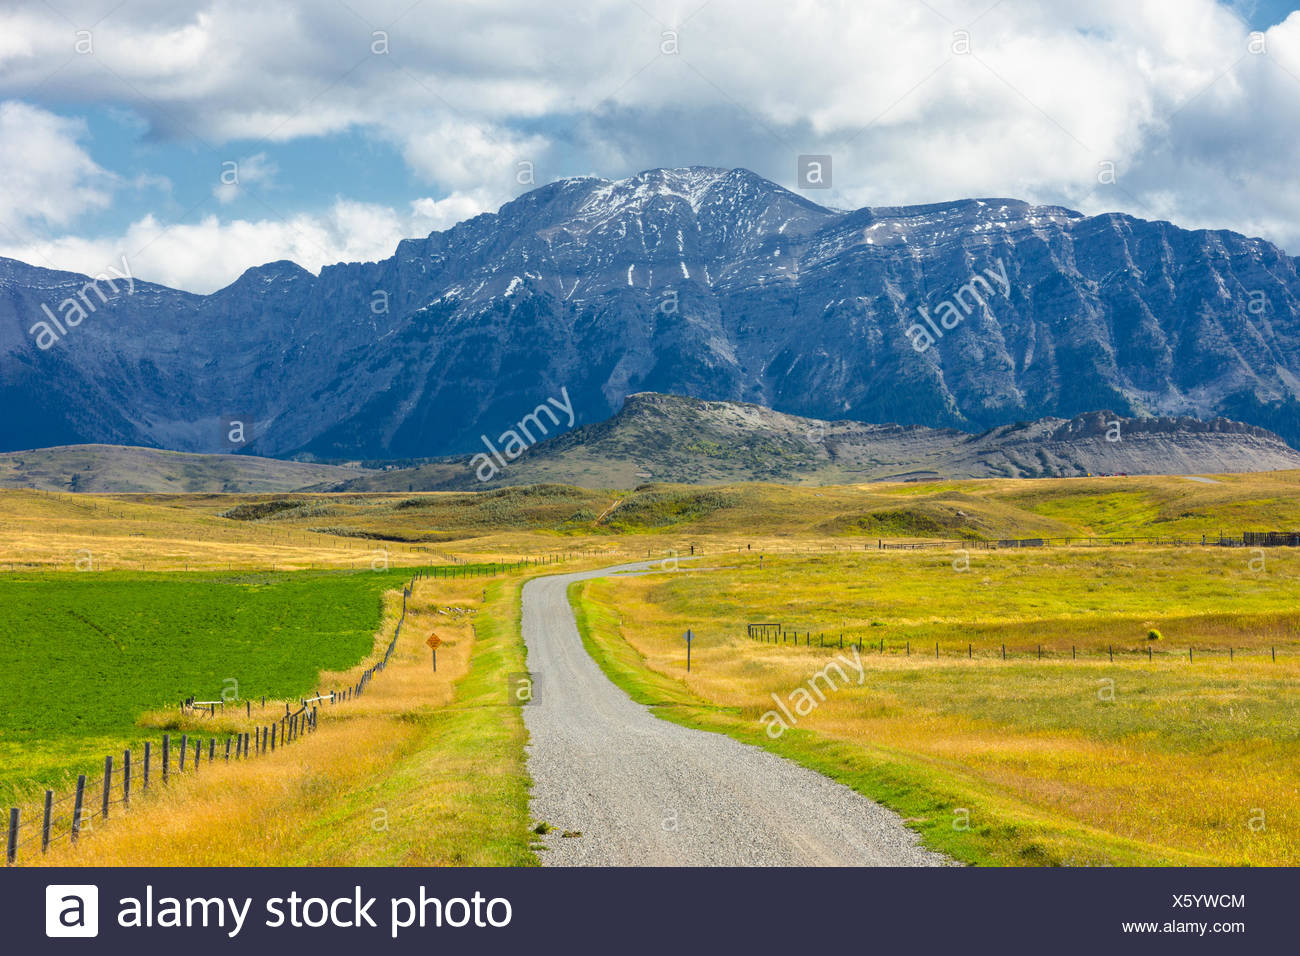 Gravel road, foothills, Longview, Alberta, Canada - Stock Image